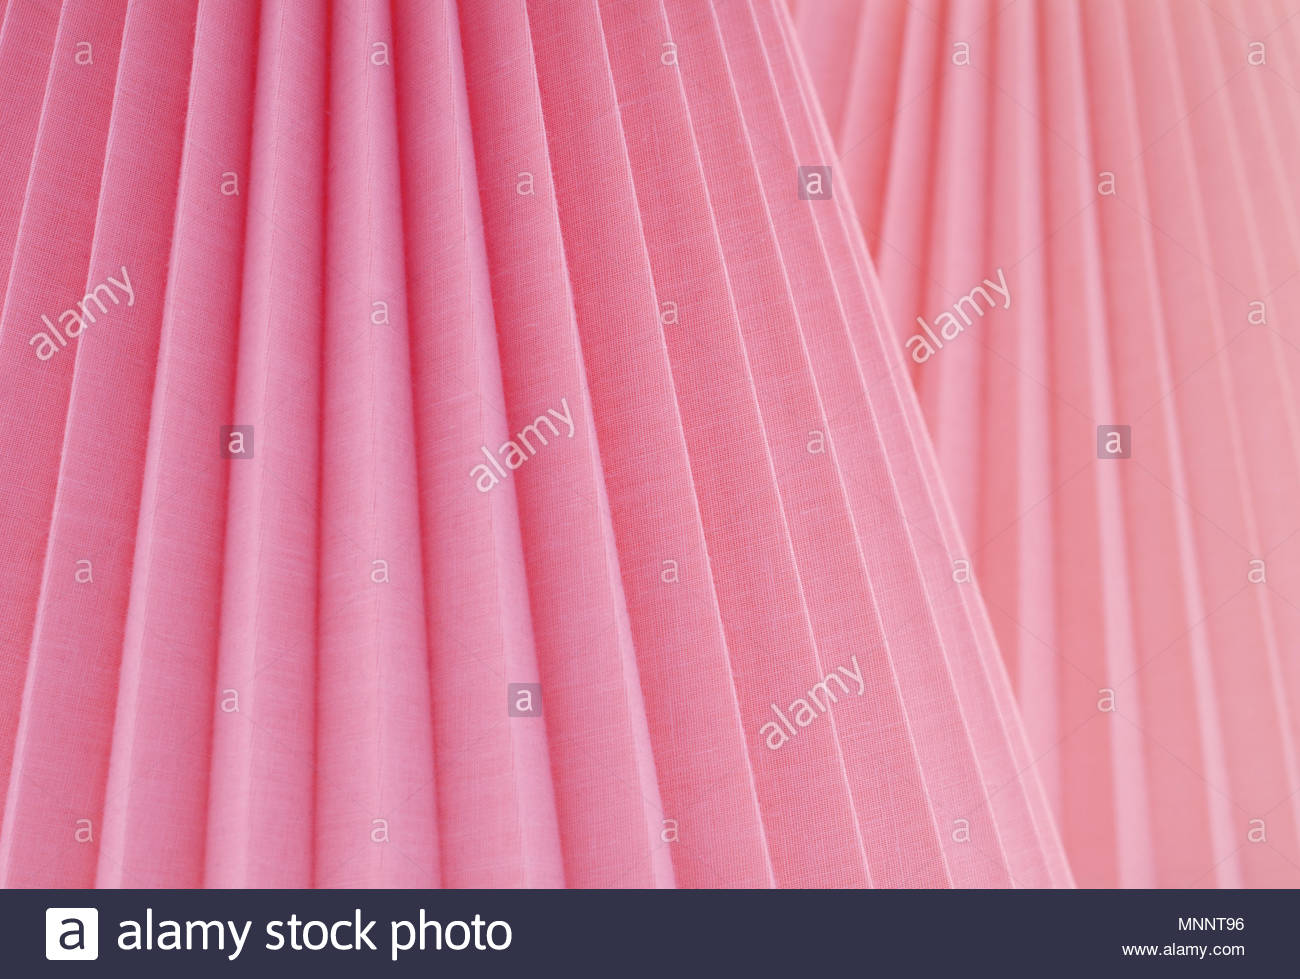 Artistic Abstract with Folded Rose Pink Fabric at Slanted Parallel Angles. A design background with room or space for copy, text, words, or a Wall Pic - Stock Image